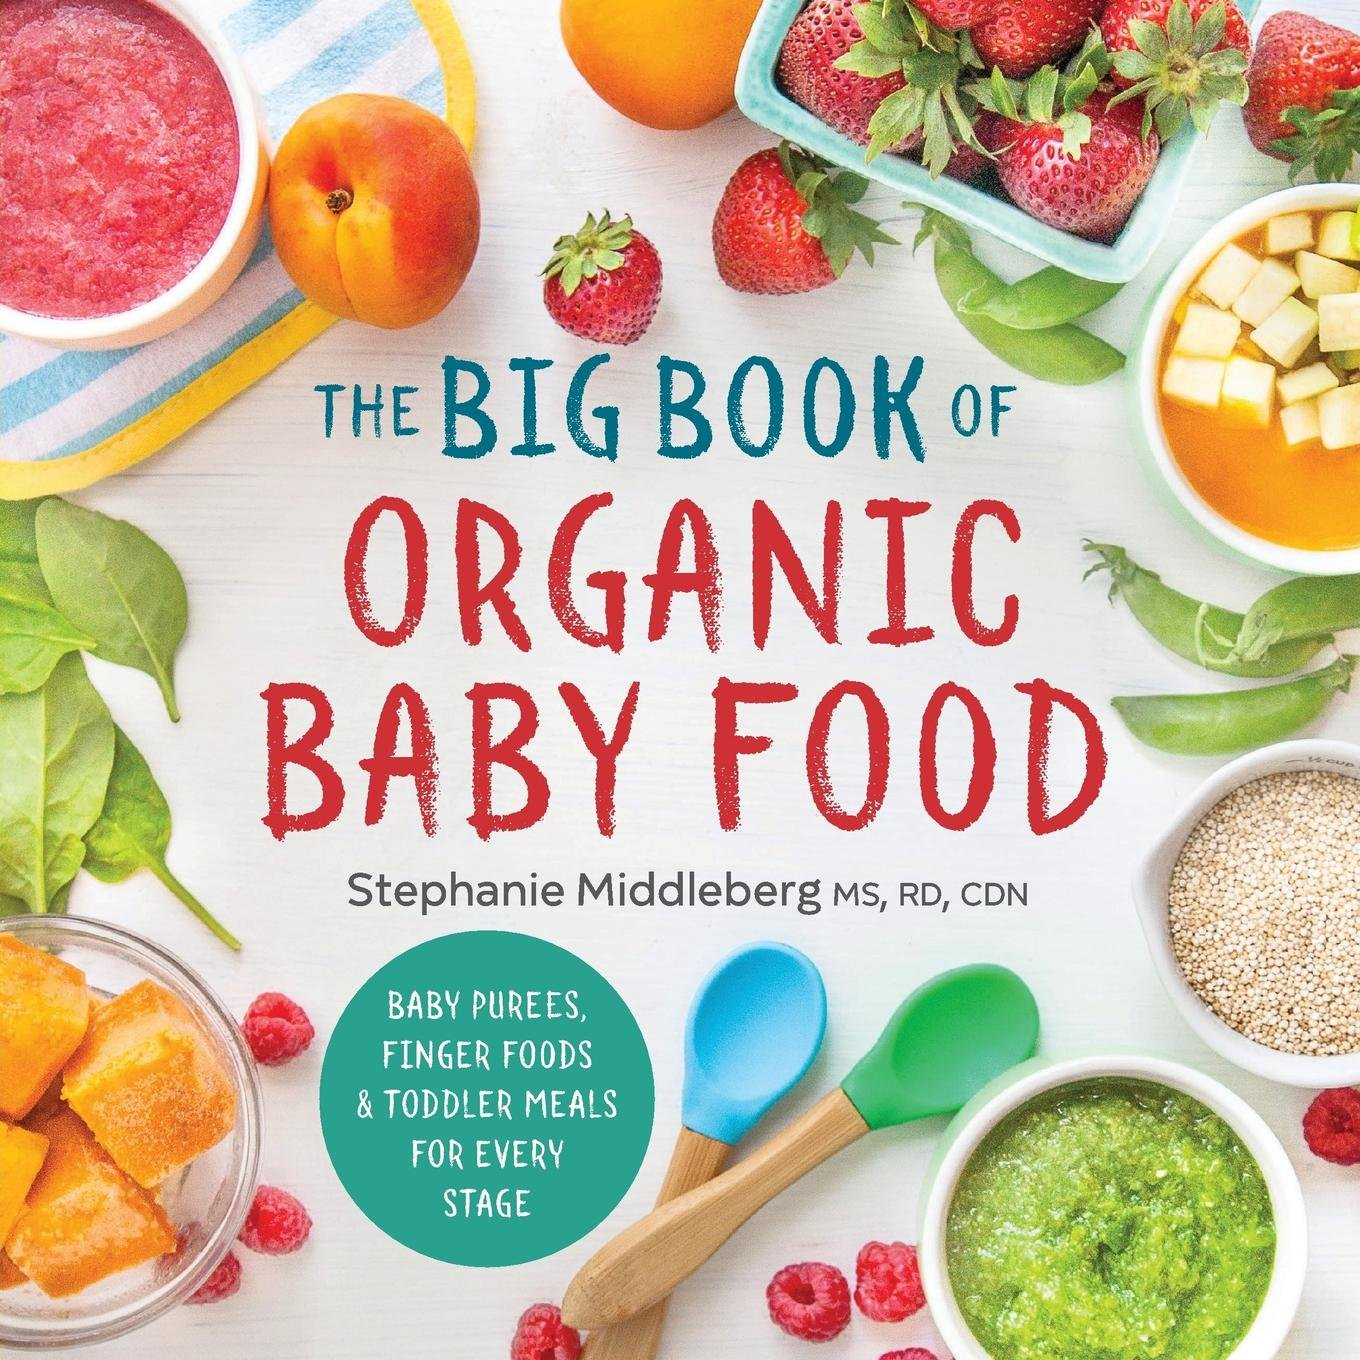 The Big Book of Organic Baby Food: Baby Purées, Finger Foods, and Toddler